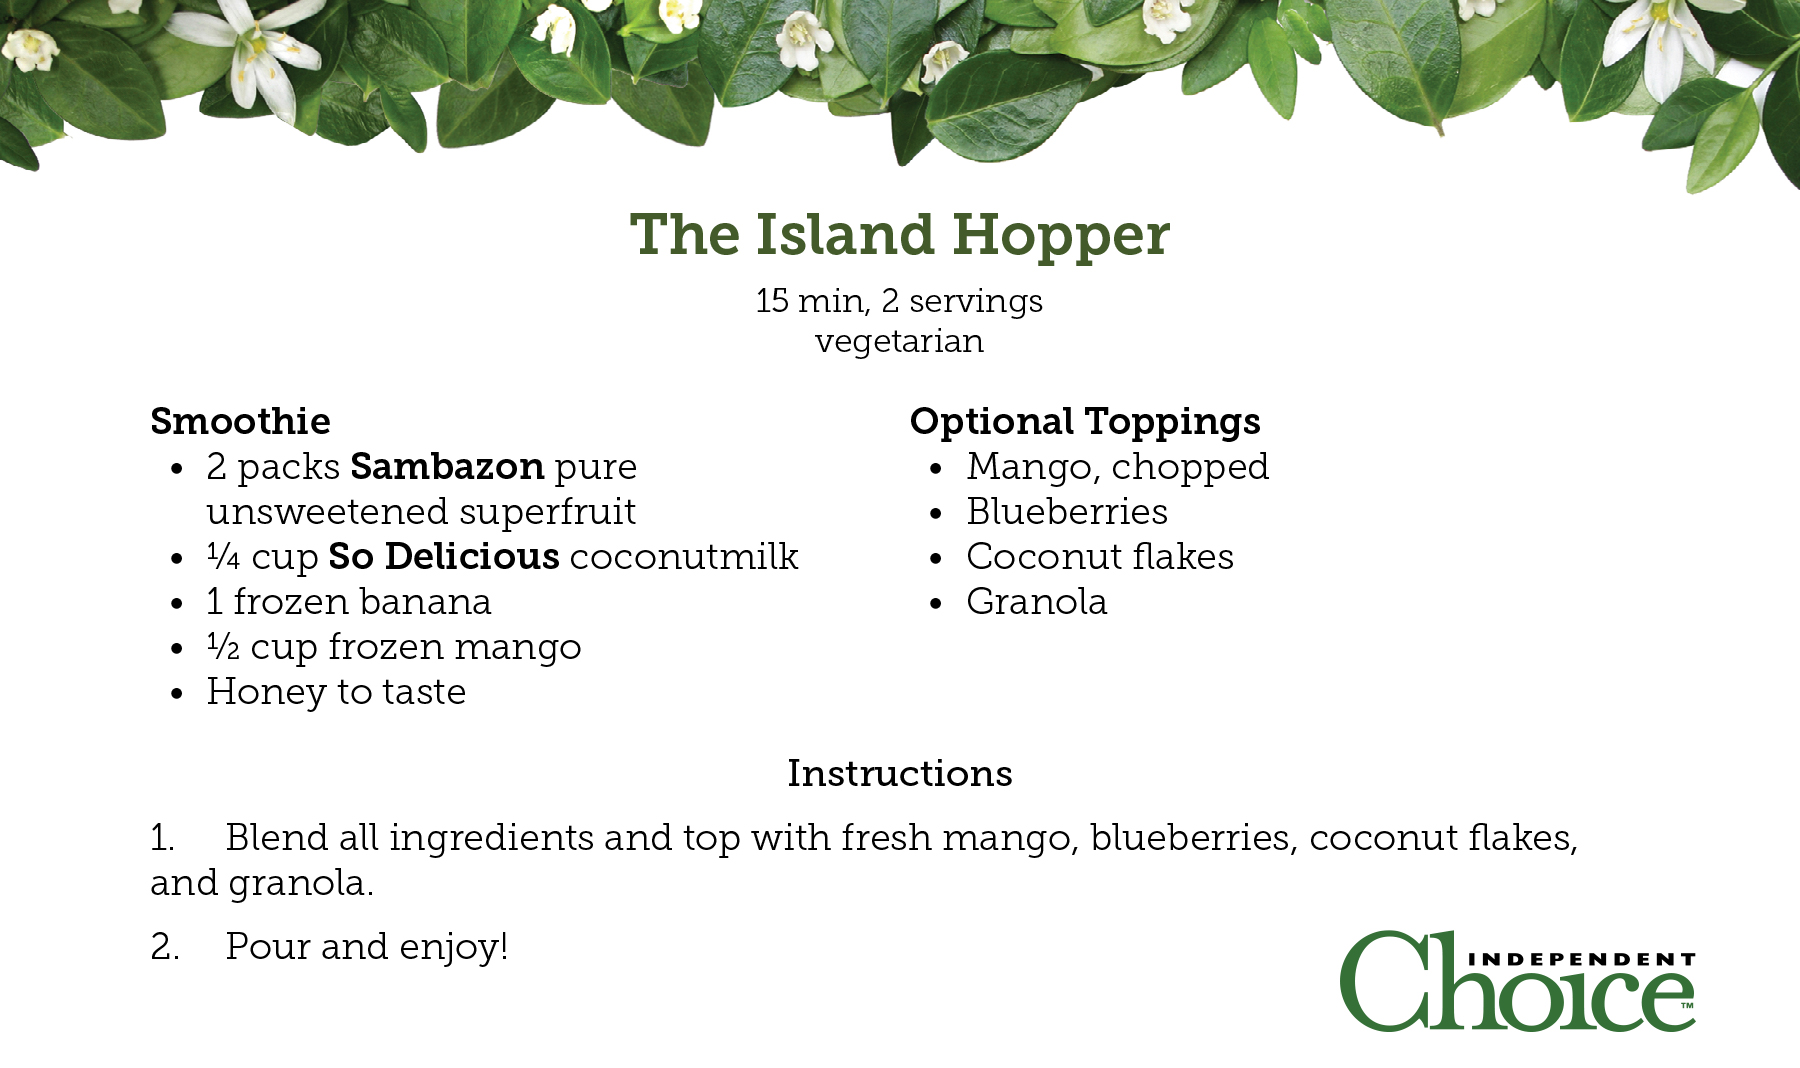 The Island Hopper.jpg